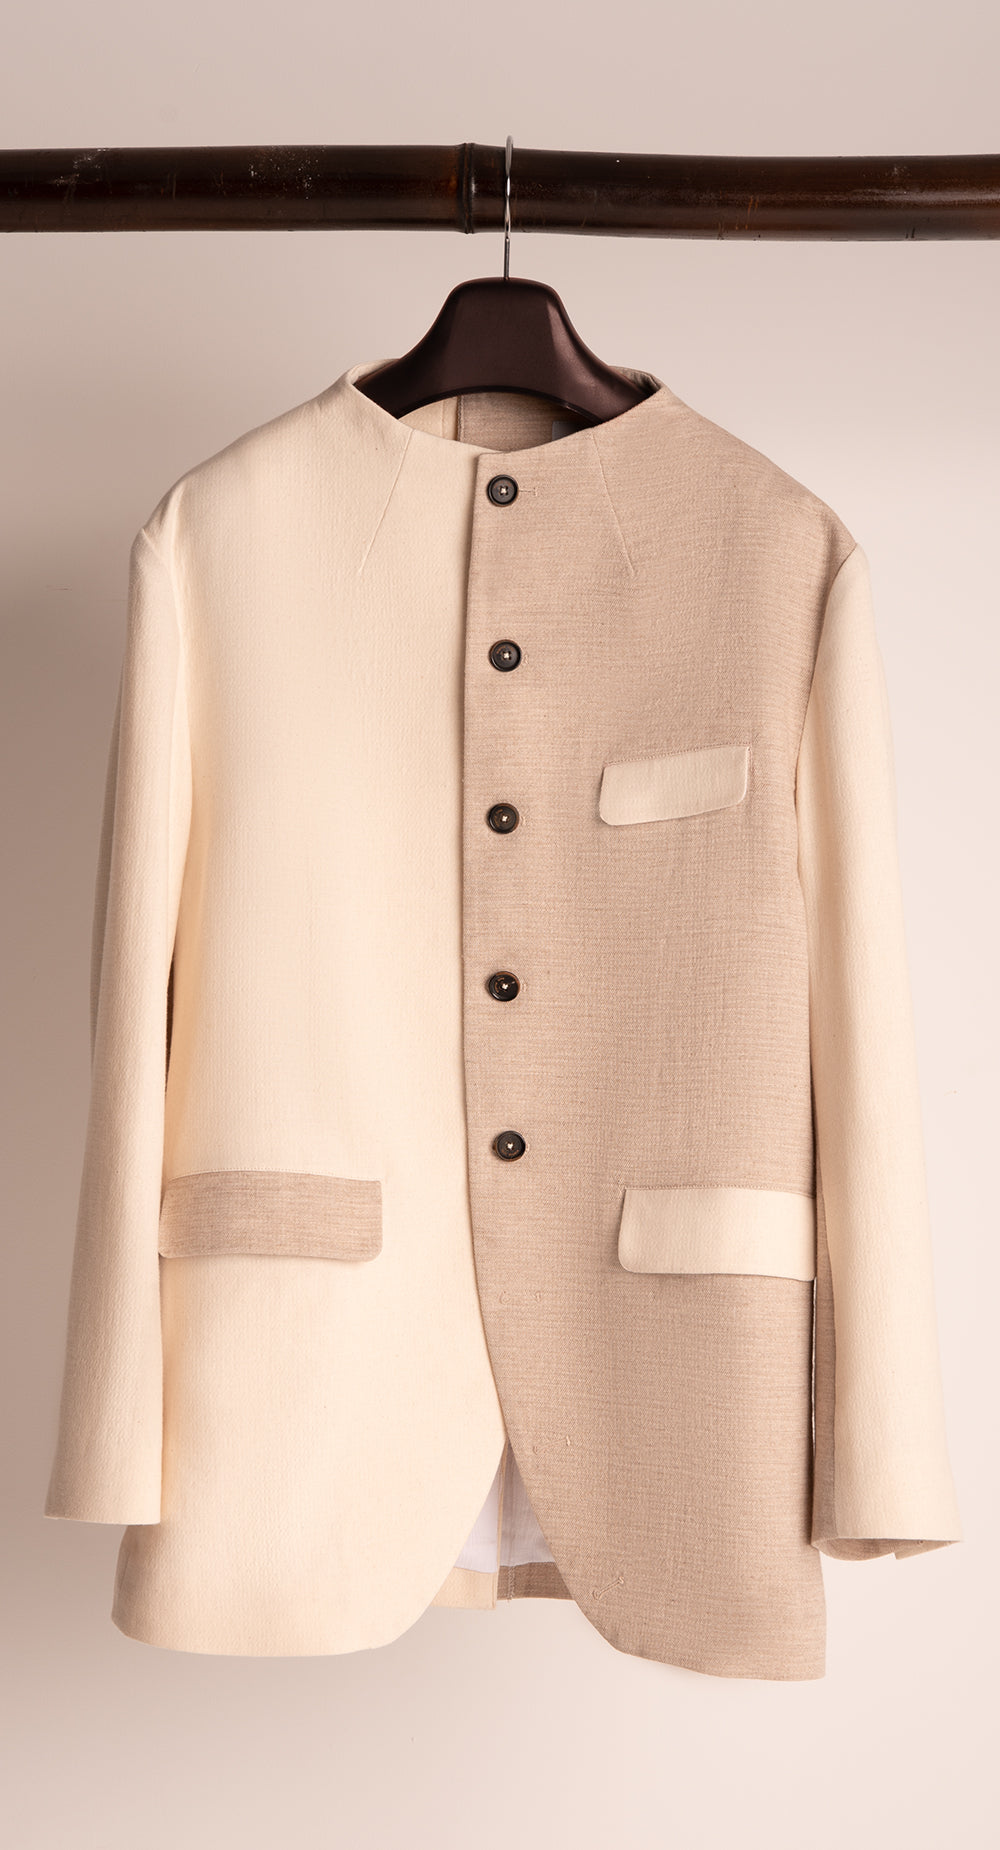 Round High-neck Jacket P-BE